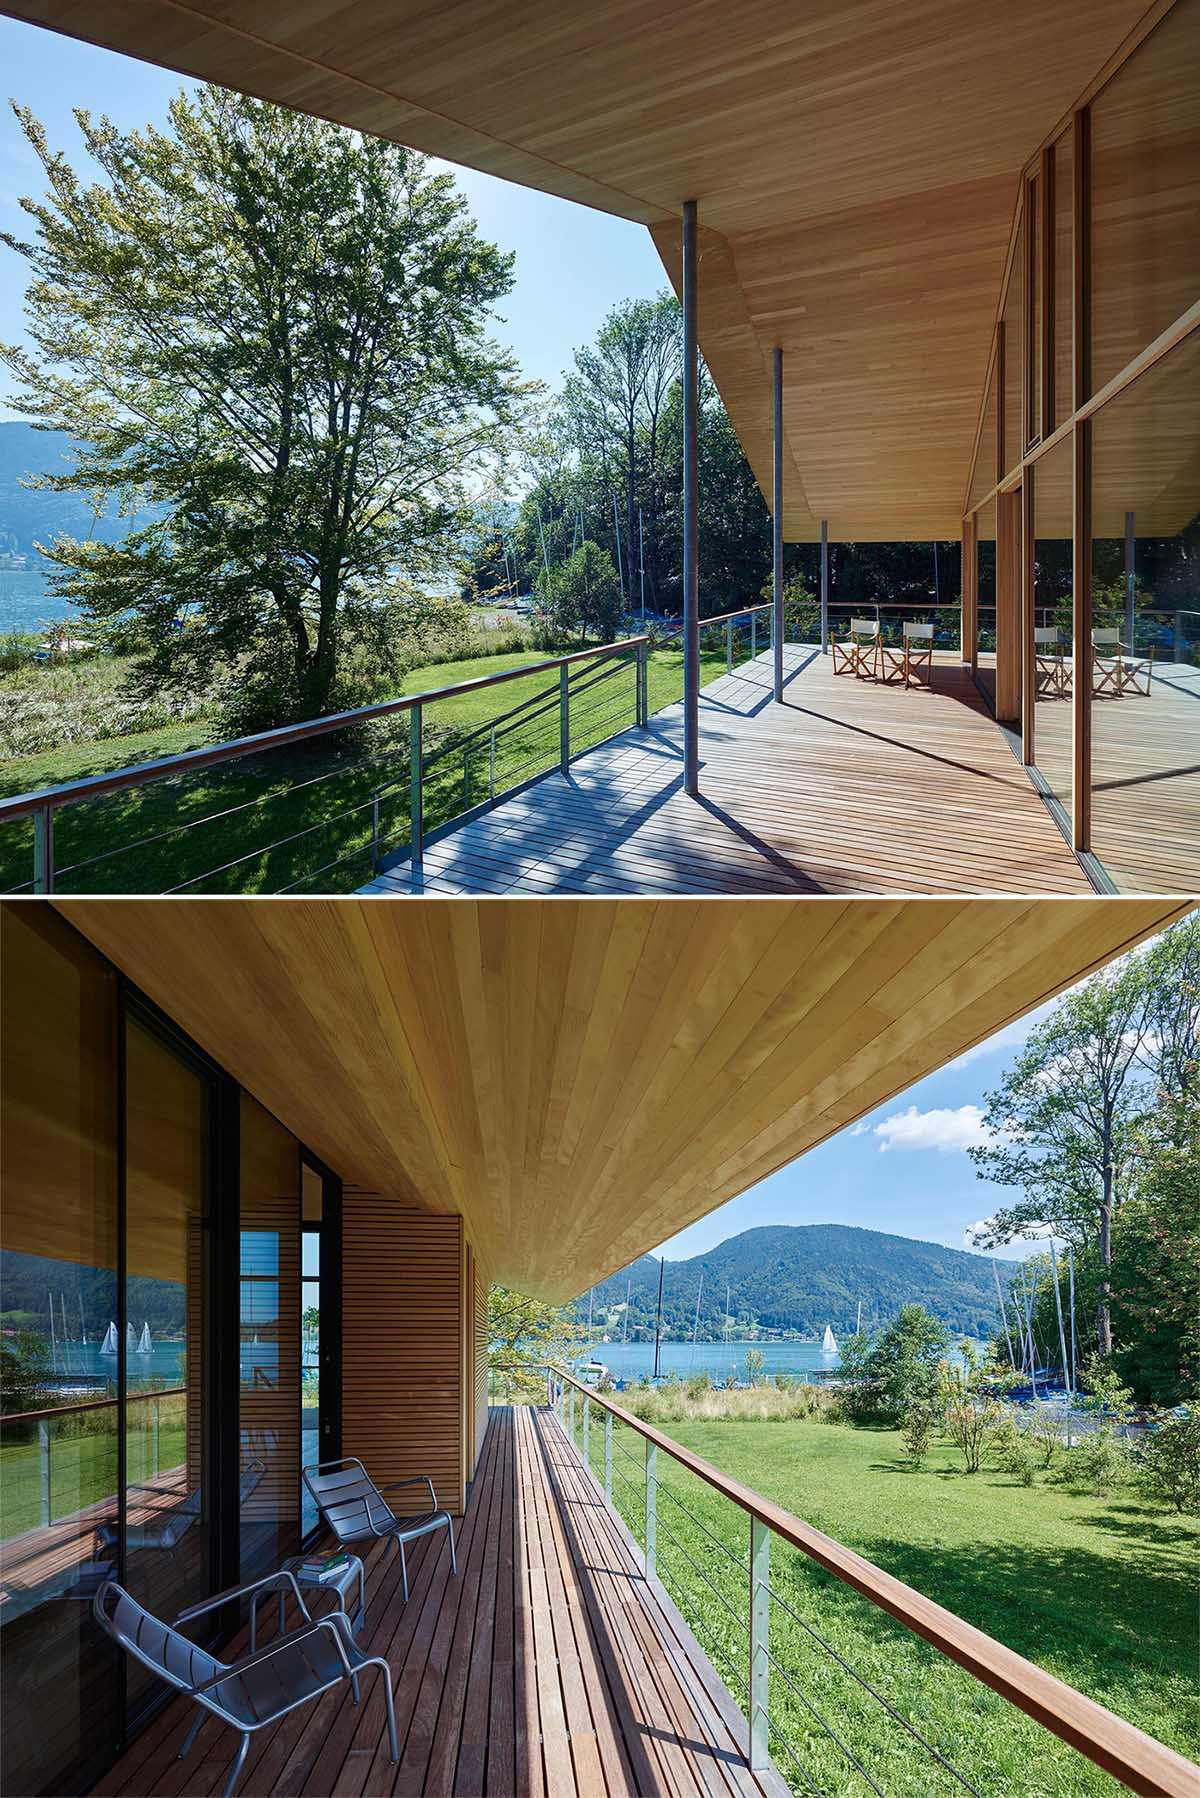 A wooden walkway surrounds this modern house and widens into a terrace at the lakeside, completely covered by the steep saddleback roof.